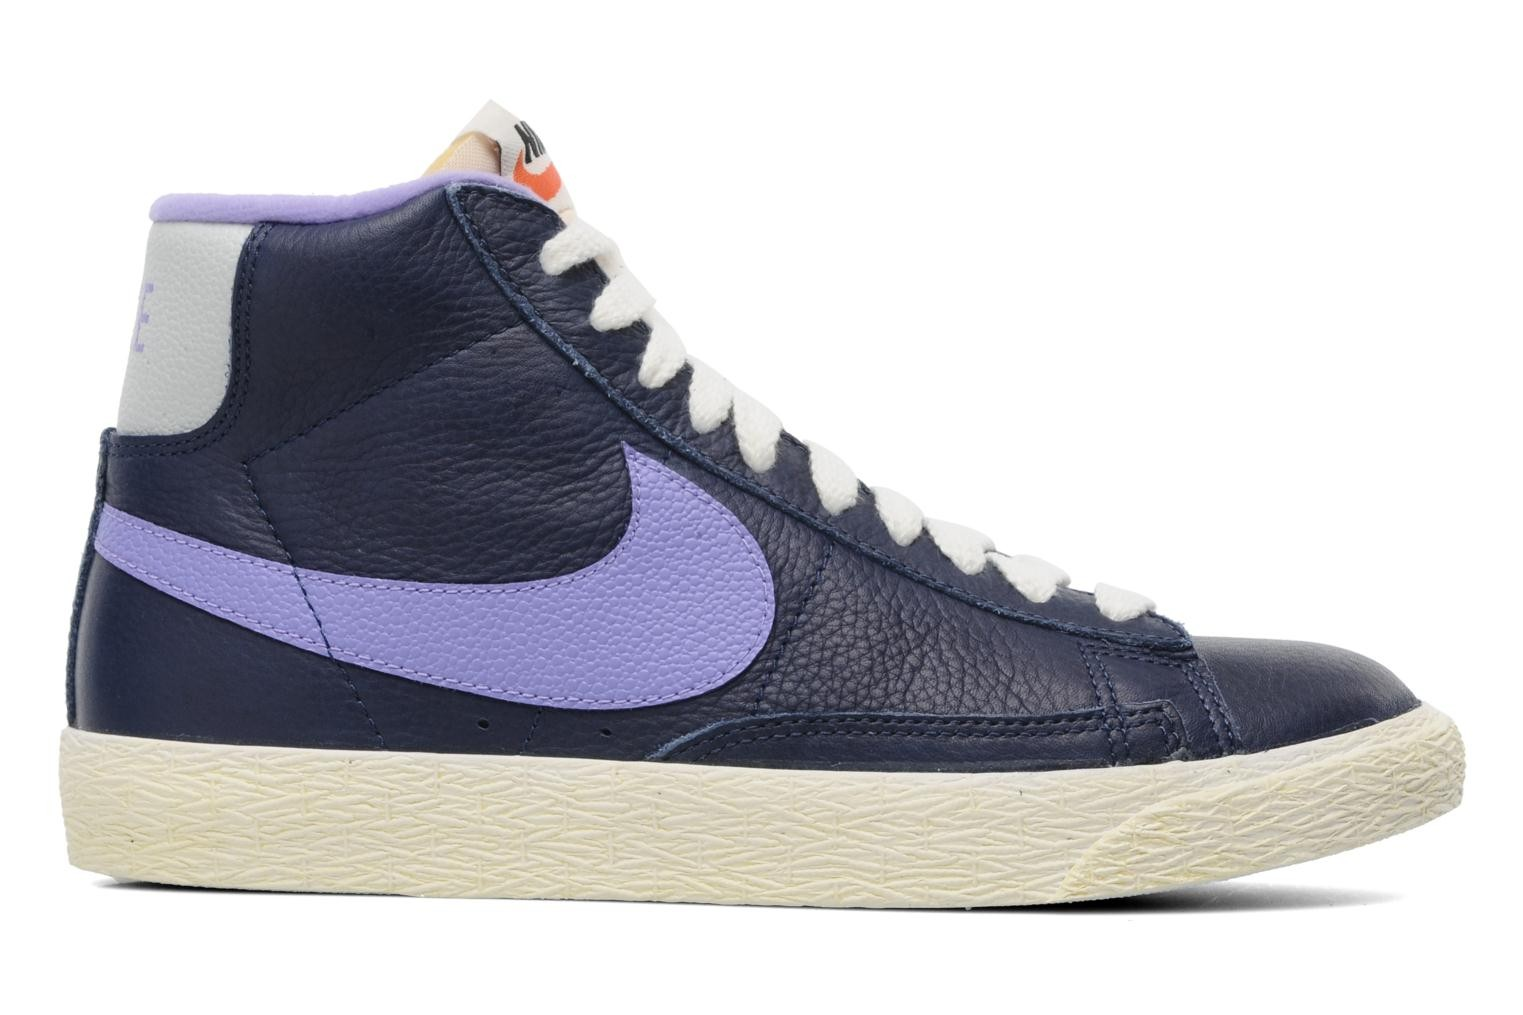 Nike WMNS Blazer Mid Leather (Lthr) Vintage Midnight Navy Atomic Violet Women's Shoe